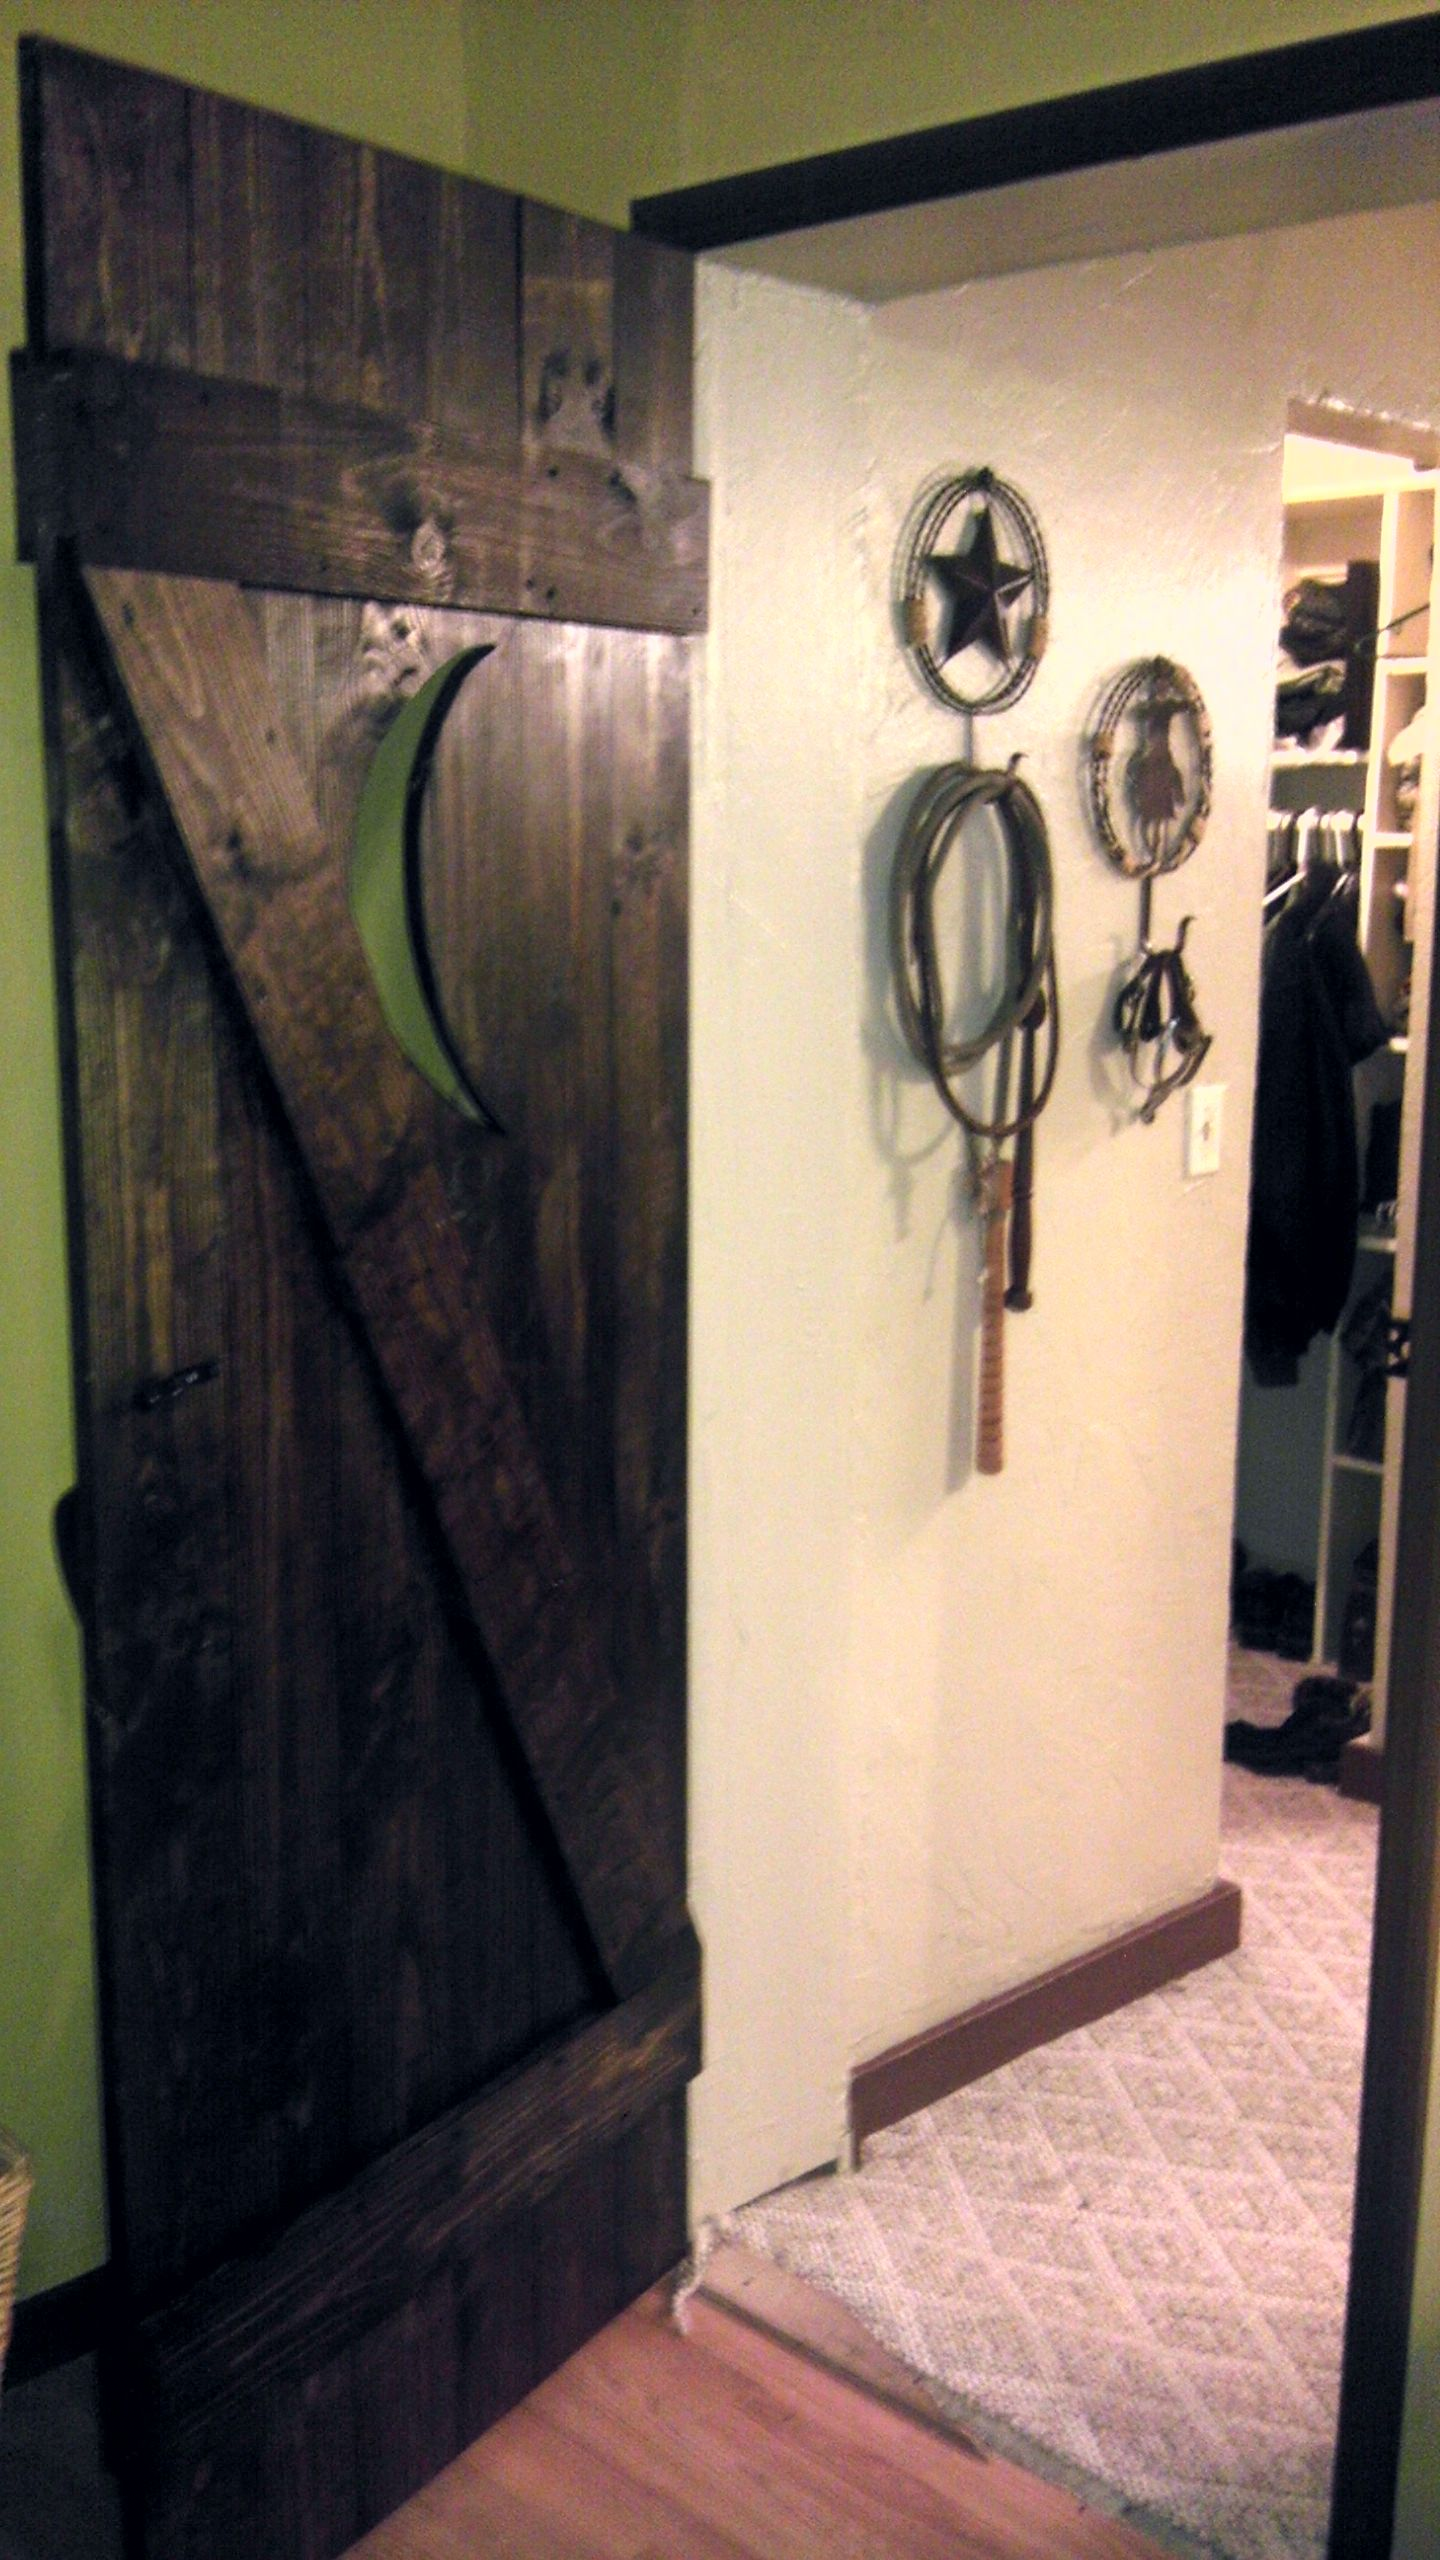 Outhouse bathroom decorating ideas - My Outhouse Door Leading To The Bathroom Absolutely Love It With Our Western Decor